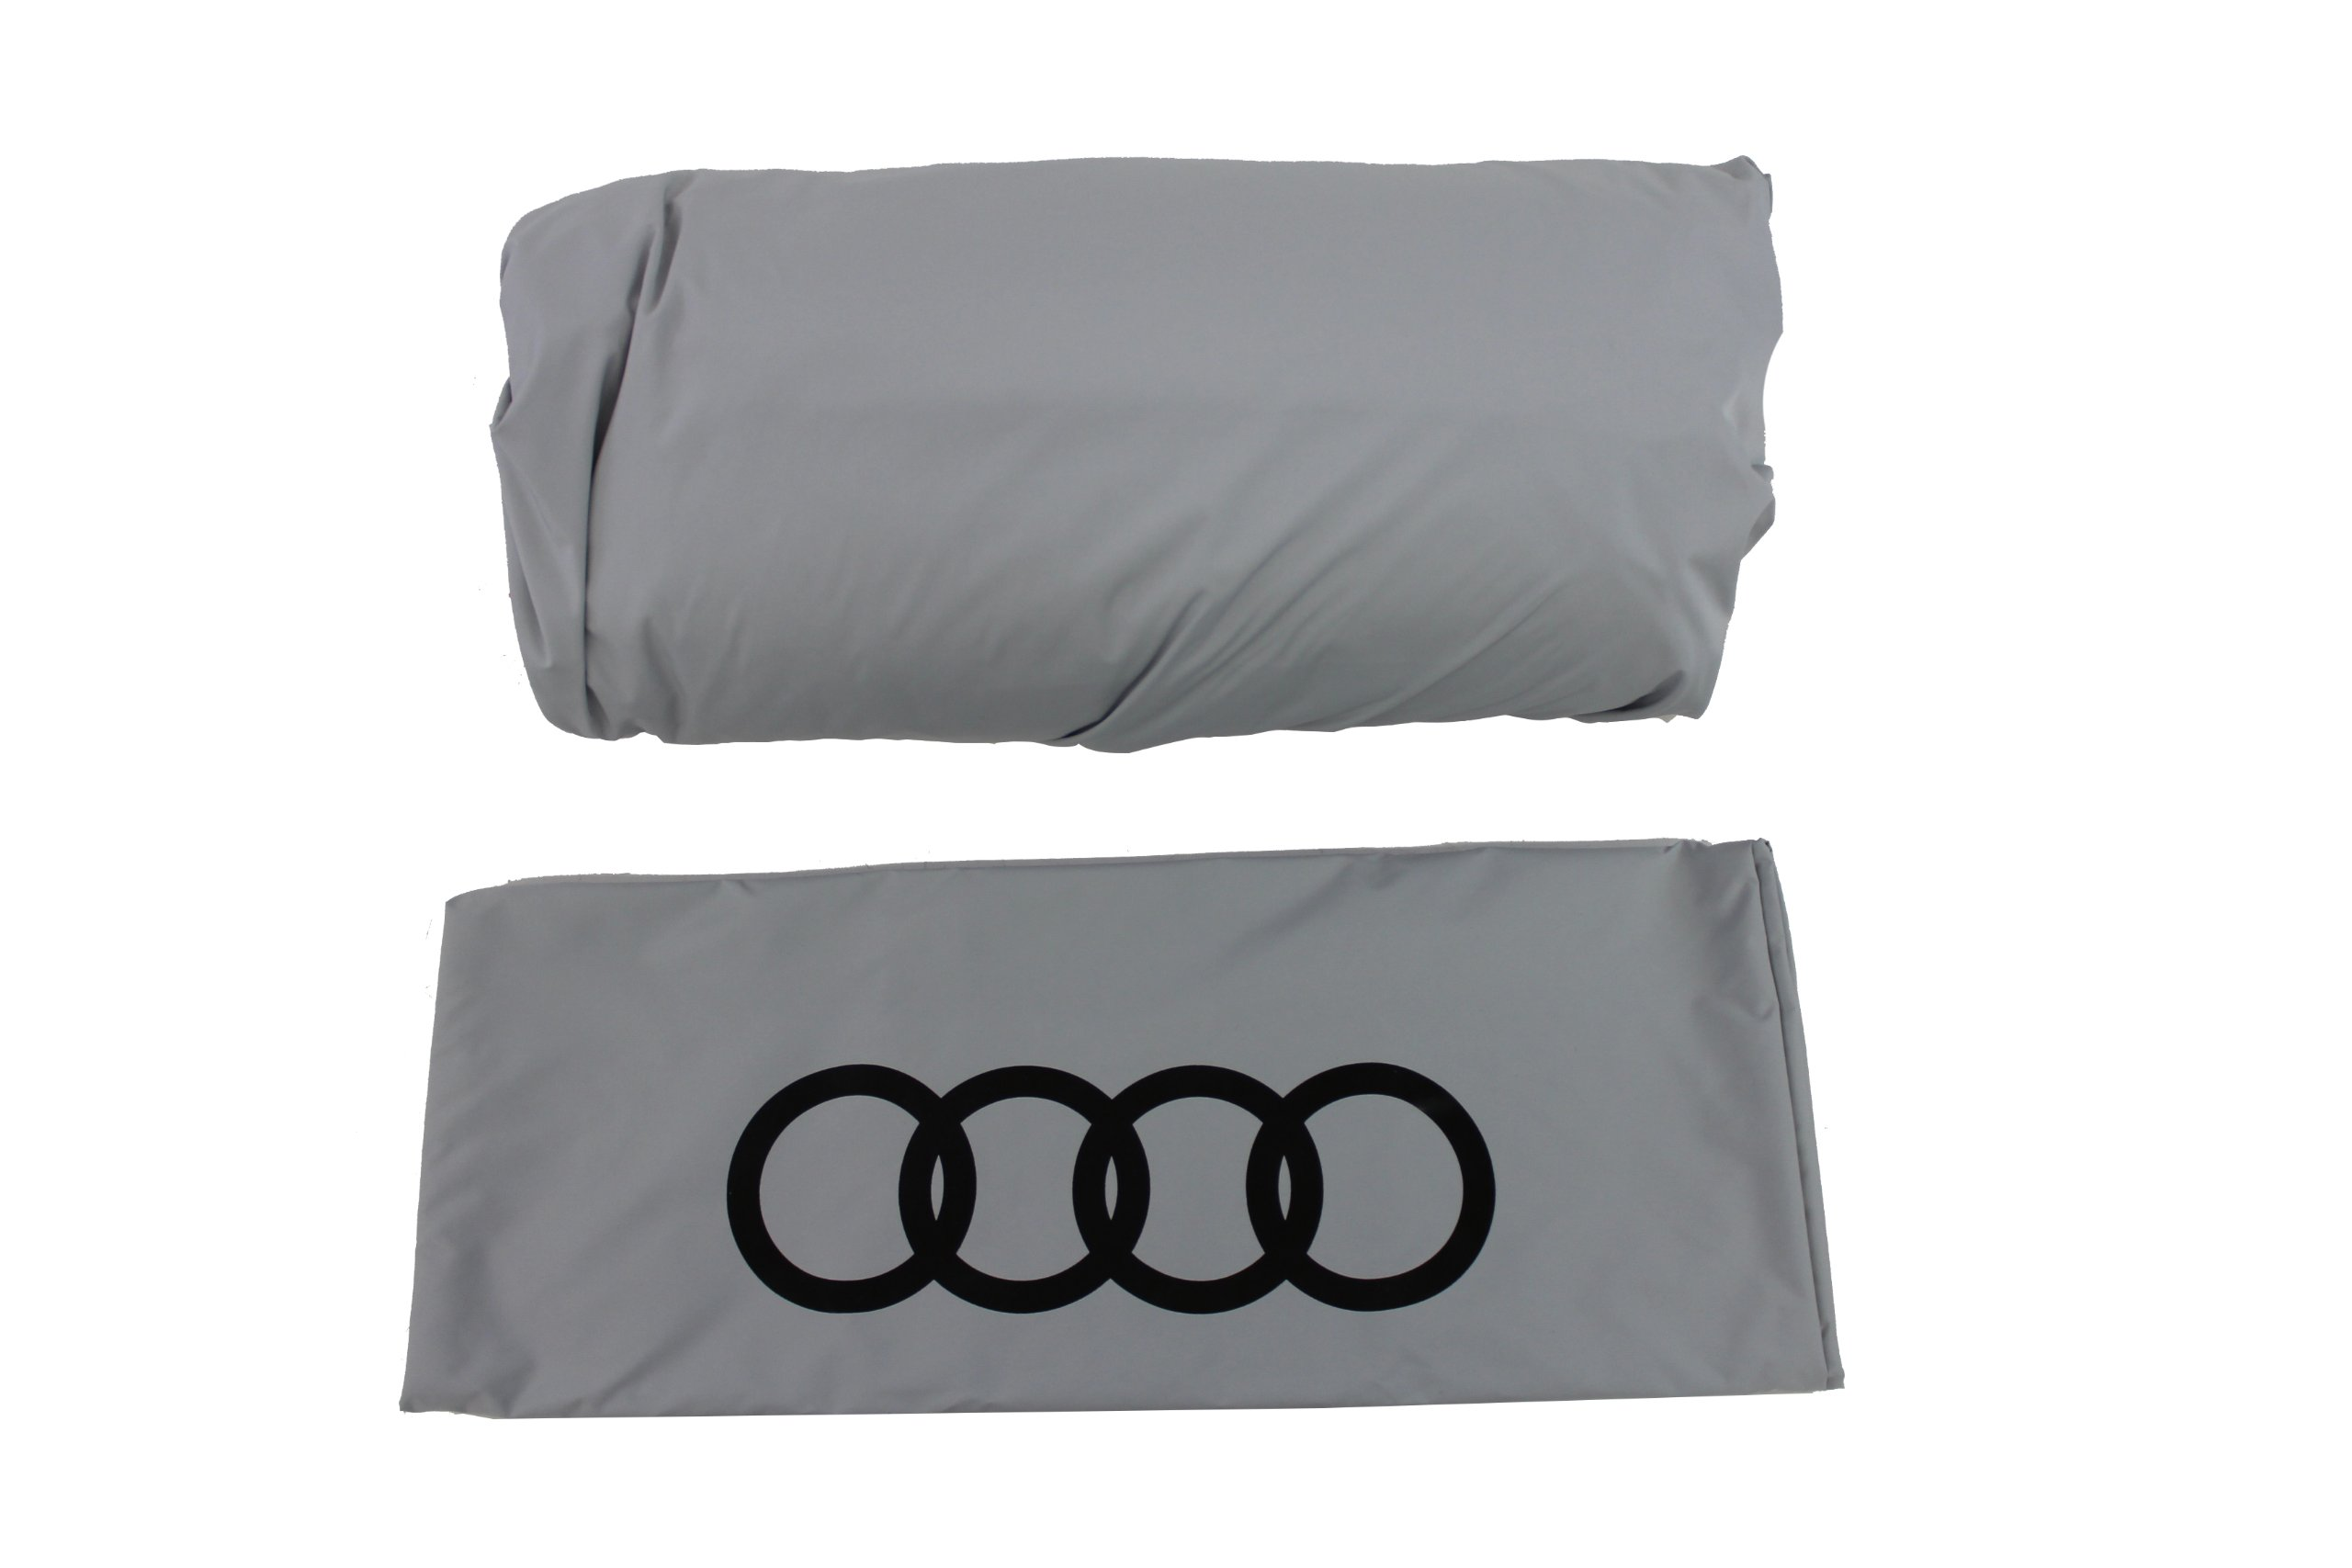 Includes Storage Bag Guaranteed Keep Vehicle Looking Between Use Ultra Soft Indoor Material Indoor Car Cover Compatible with Audi R8 2006-2019 Black Satin